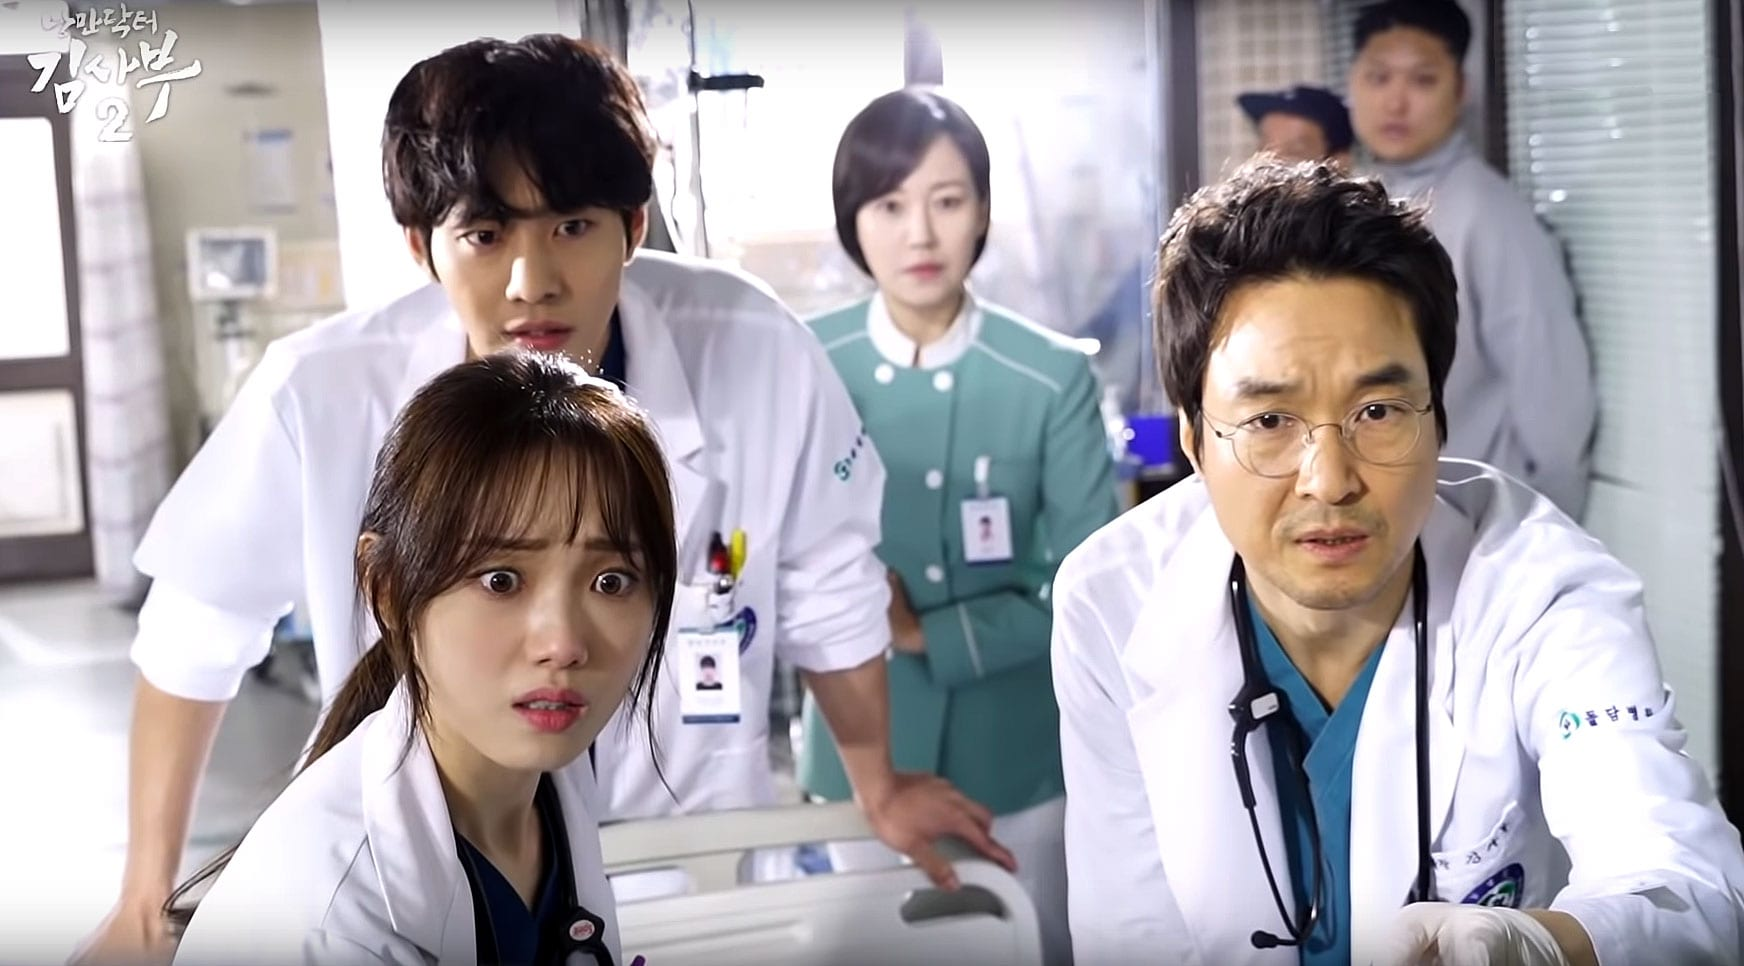 Wtk Review Dr Romantic 2 Brings About Heart Warming Lessons Of Life What The Kpop